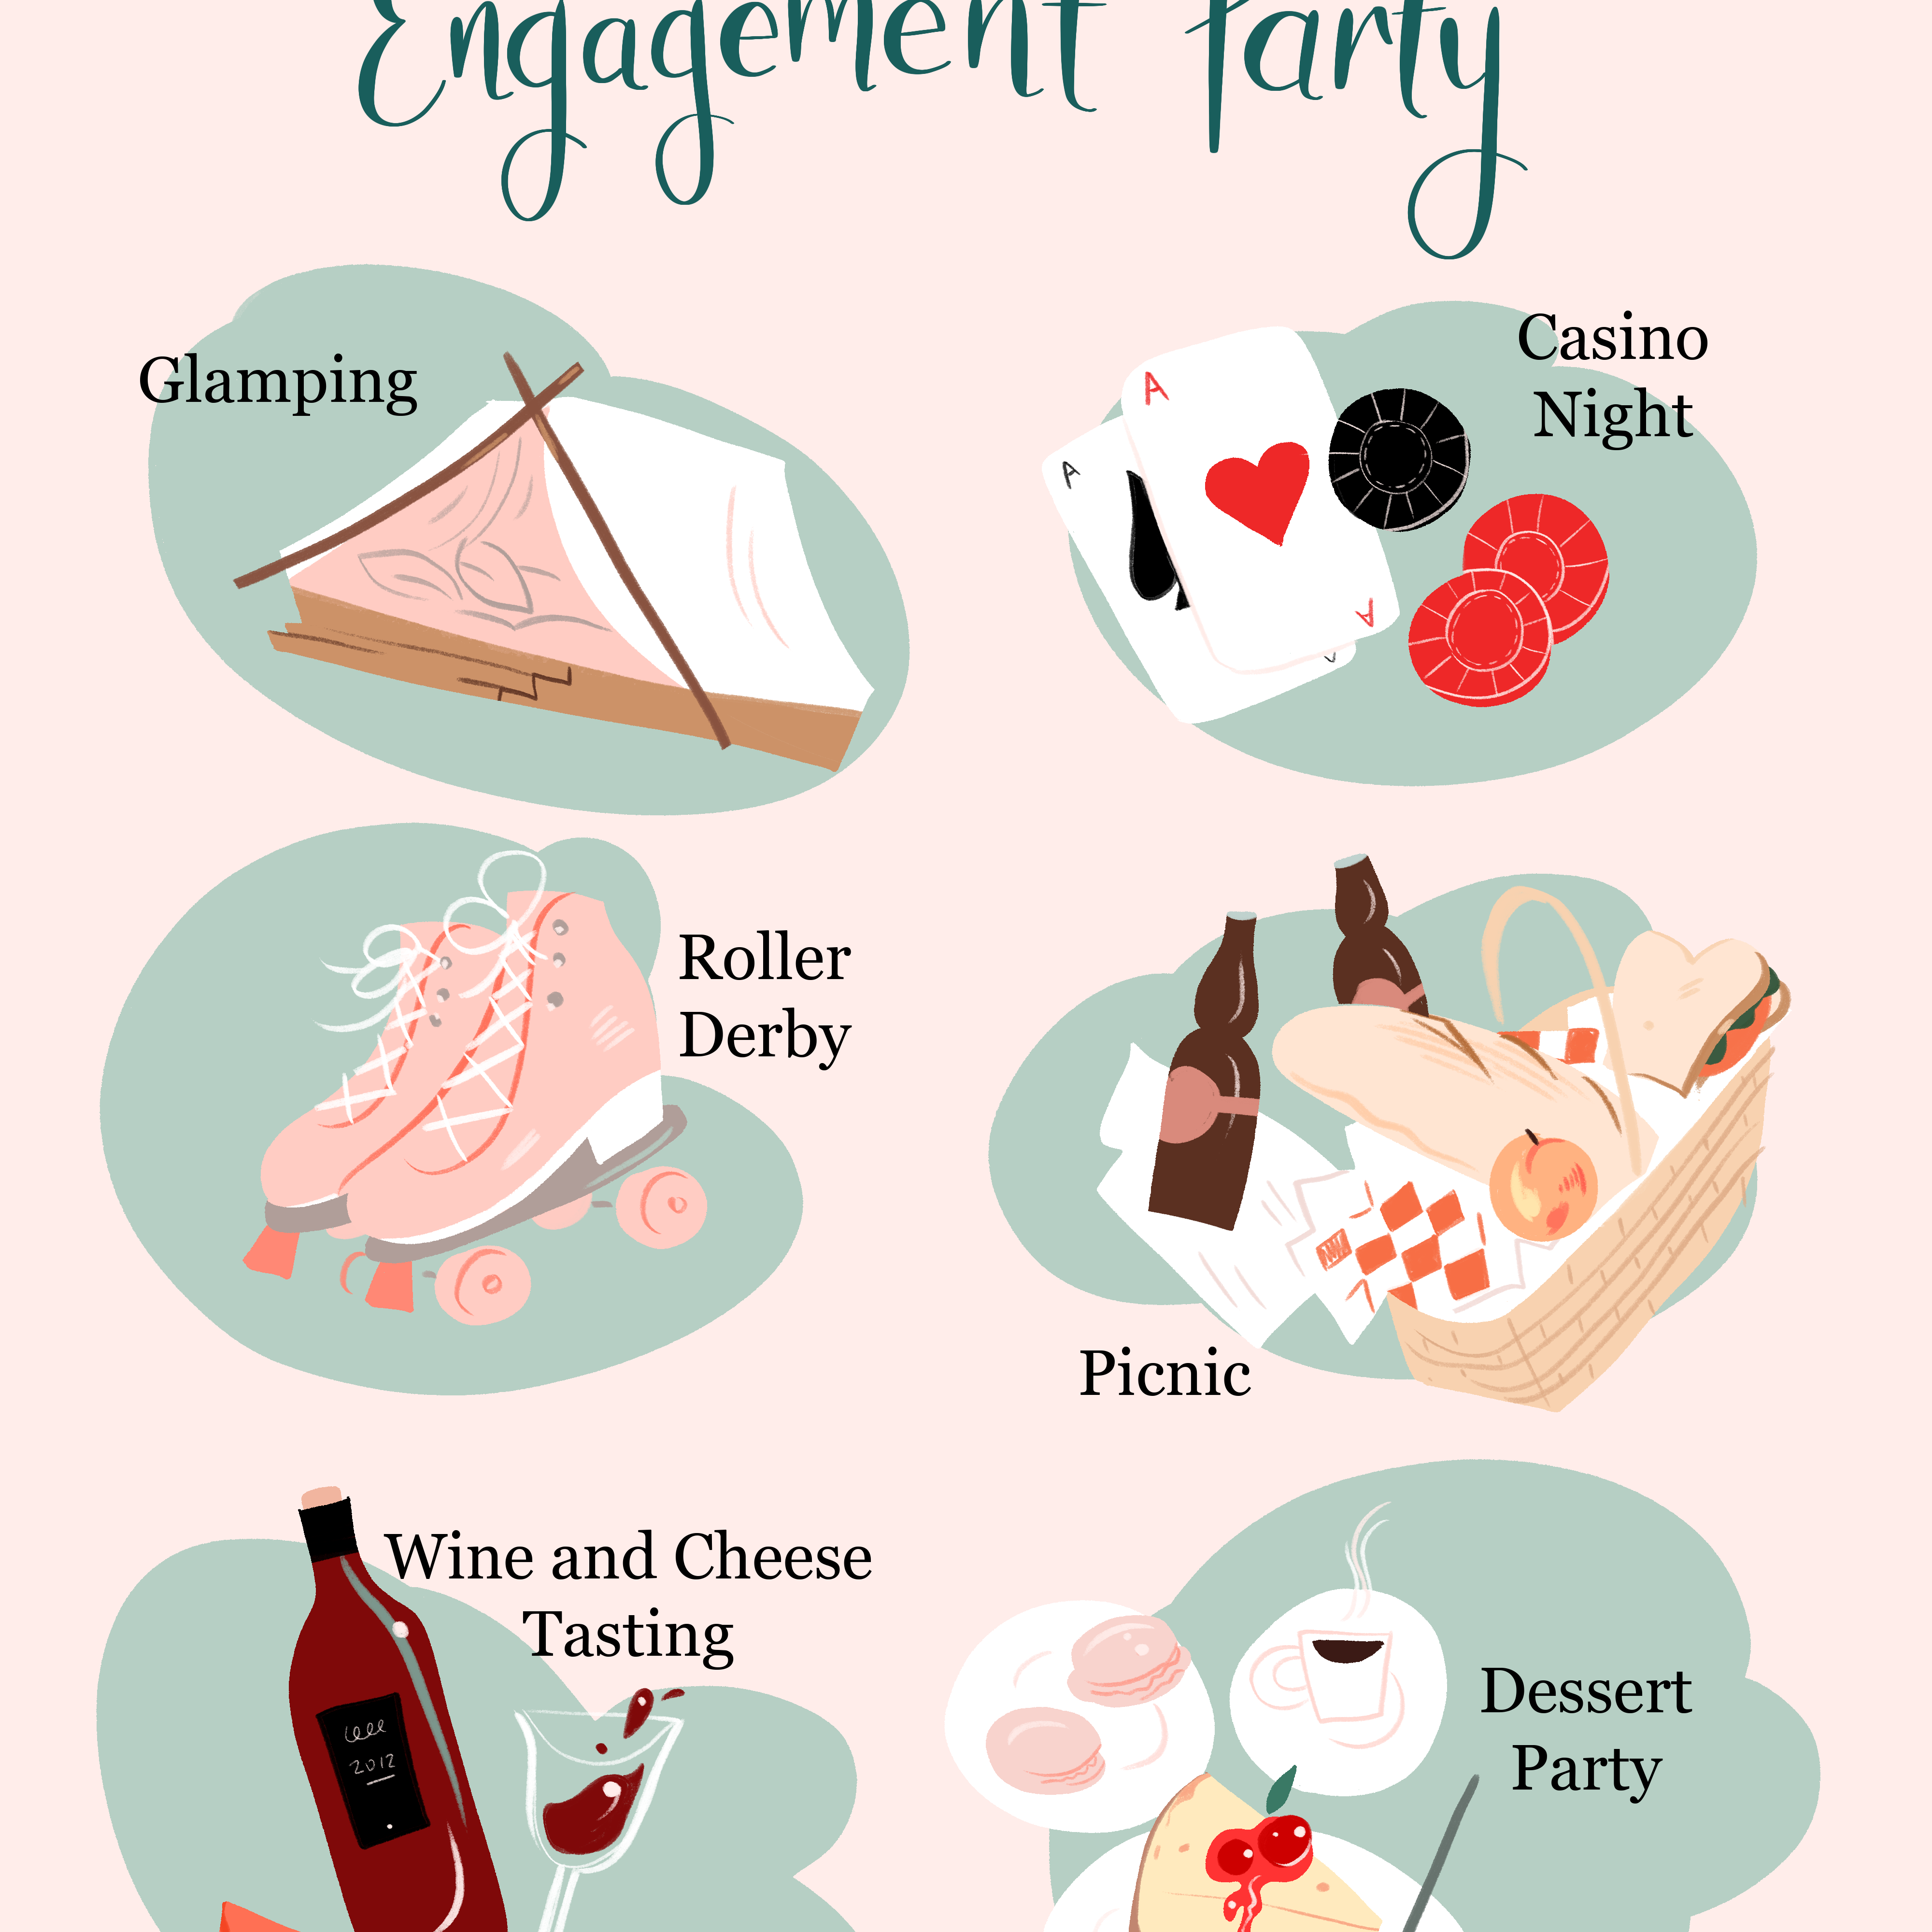 Wedding Planner Names Ideas: 55 Unique Engagement Party Ideas To Kick Off Your Wedding